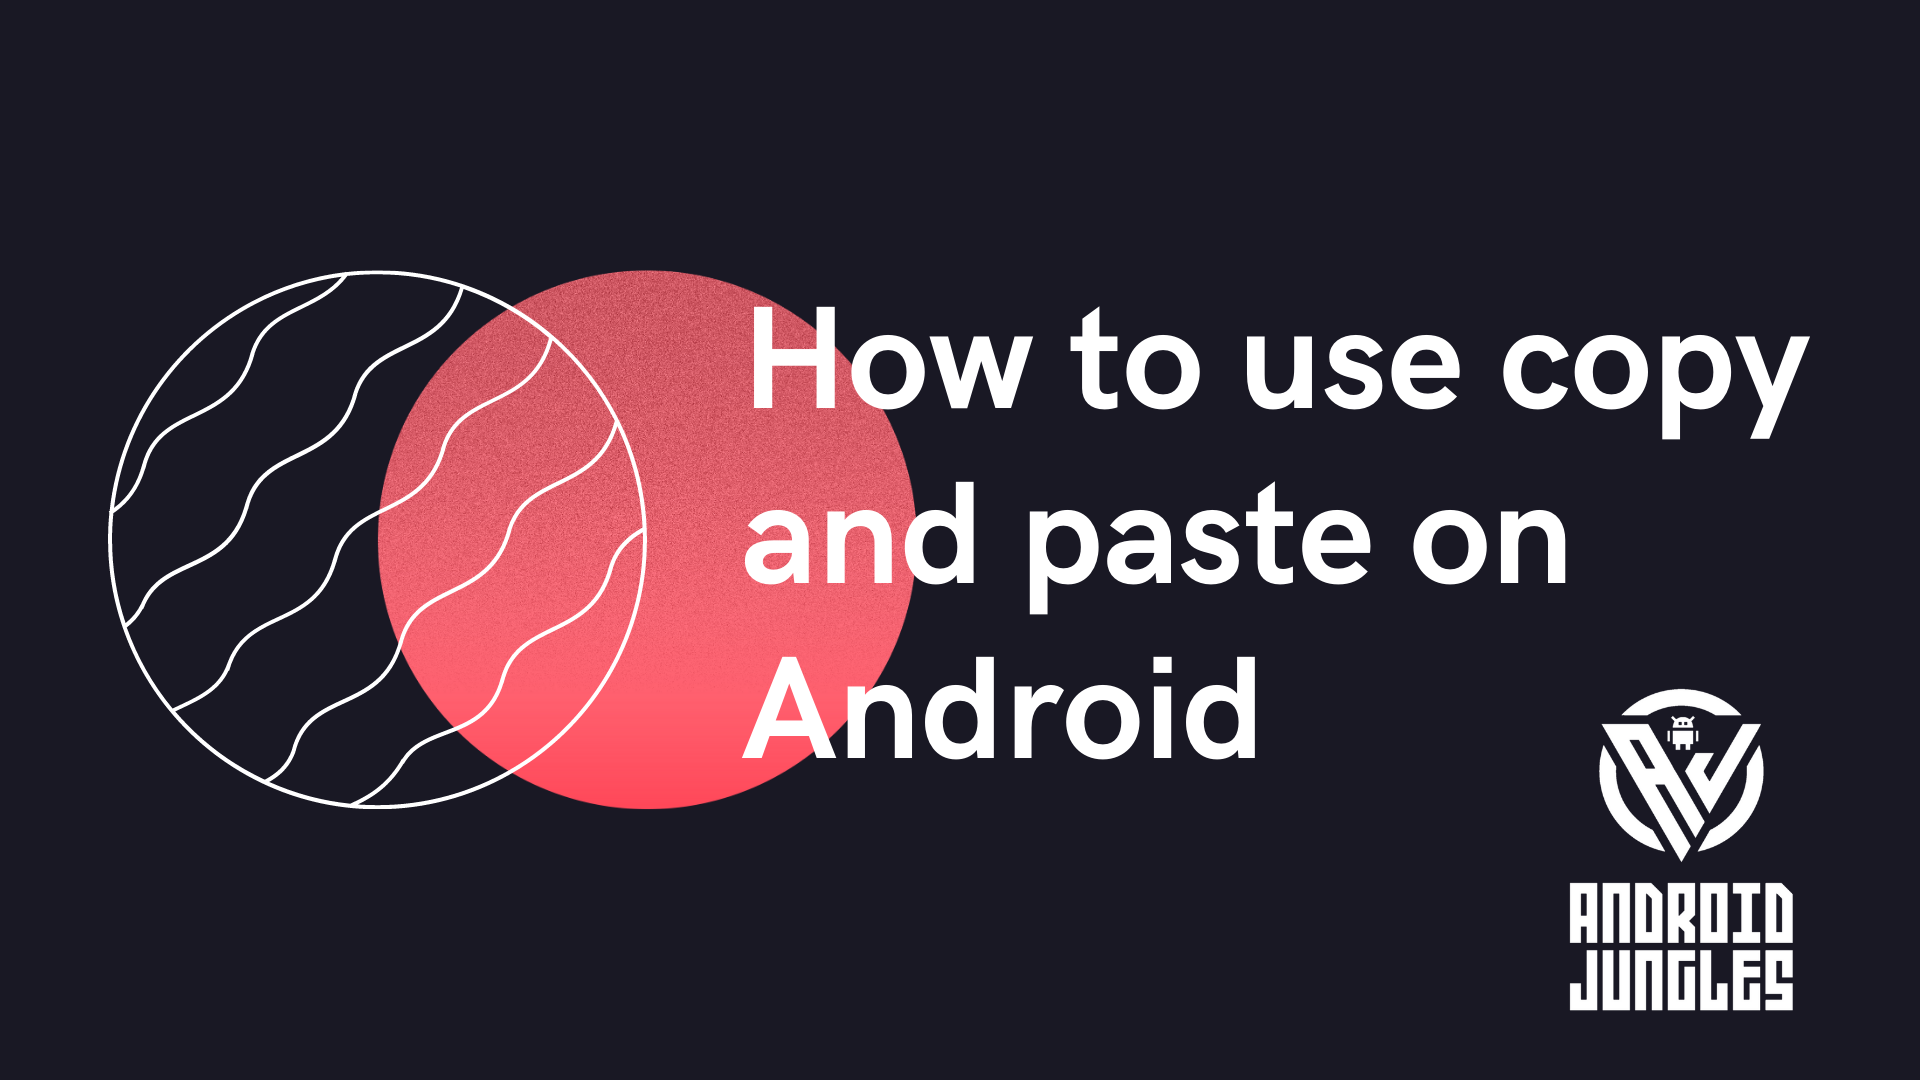 How to use copy and paste on Android